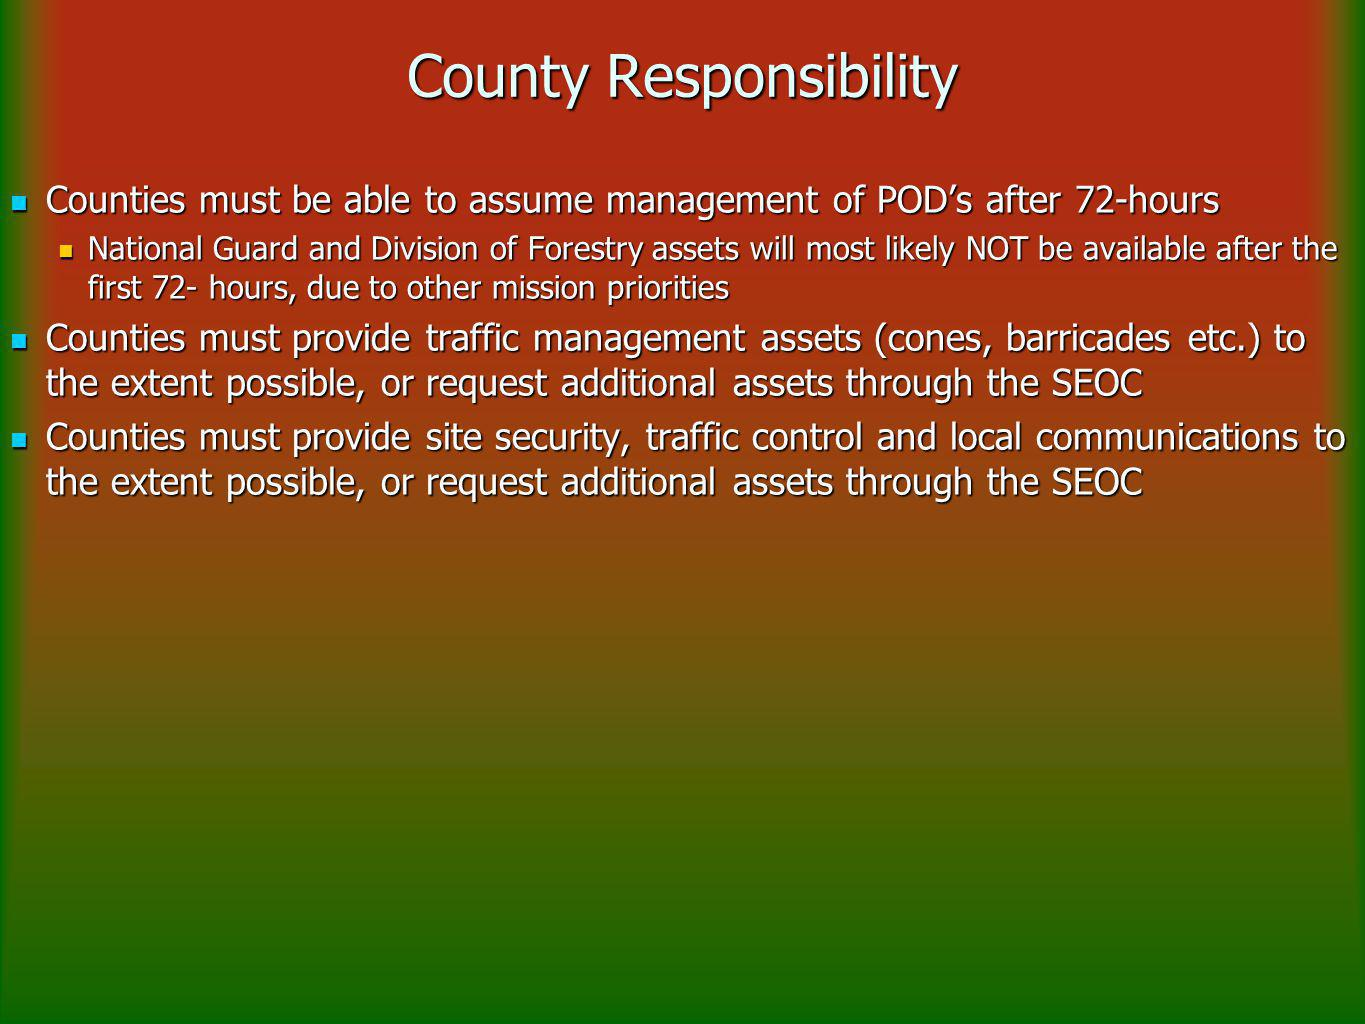 County Responsibility Counties must be able to assume management of POD's after 72-hours Counties must be able to assume management of POD's after 72-hours National Guard and Division of Forestry assets will most likely NOT be available after the first 72- hours, due to other mission priorities National Guard and Division of Forestry assets will most likely NOT be available after the first 72- hours, due to other mission priorities Counties must provide traffic management assets (cones, barricades etc.) to the extent possible, or request additional assets through the SEOC Counties must provide traffic management assets (cones, barricades etc.) to the extent possible, or request additional assets through the SEOC Counties must provide site security, traffic control and local communications to the extent possible, or request additional assets through the SEOC Counties must provide site security, traffic control and local communications to the extent possible, or request additional assets through the SEOC